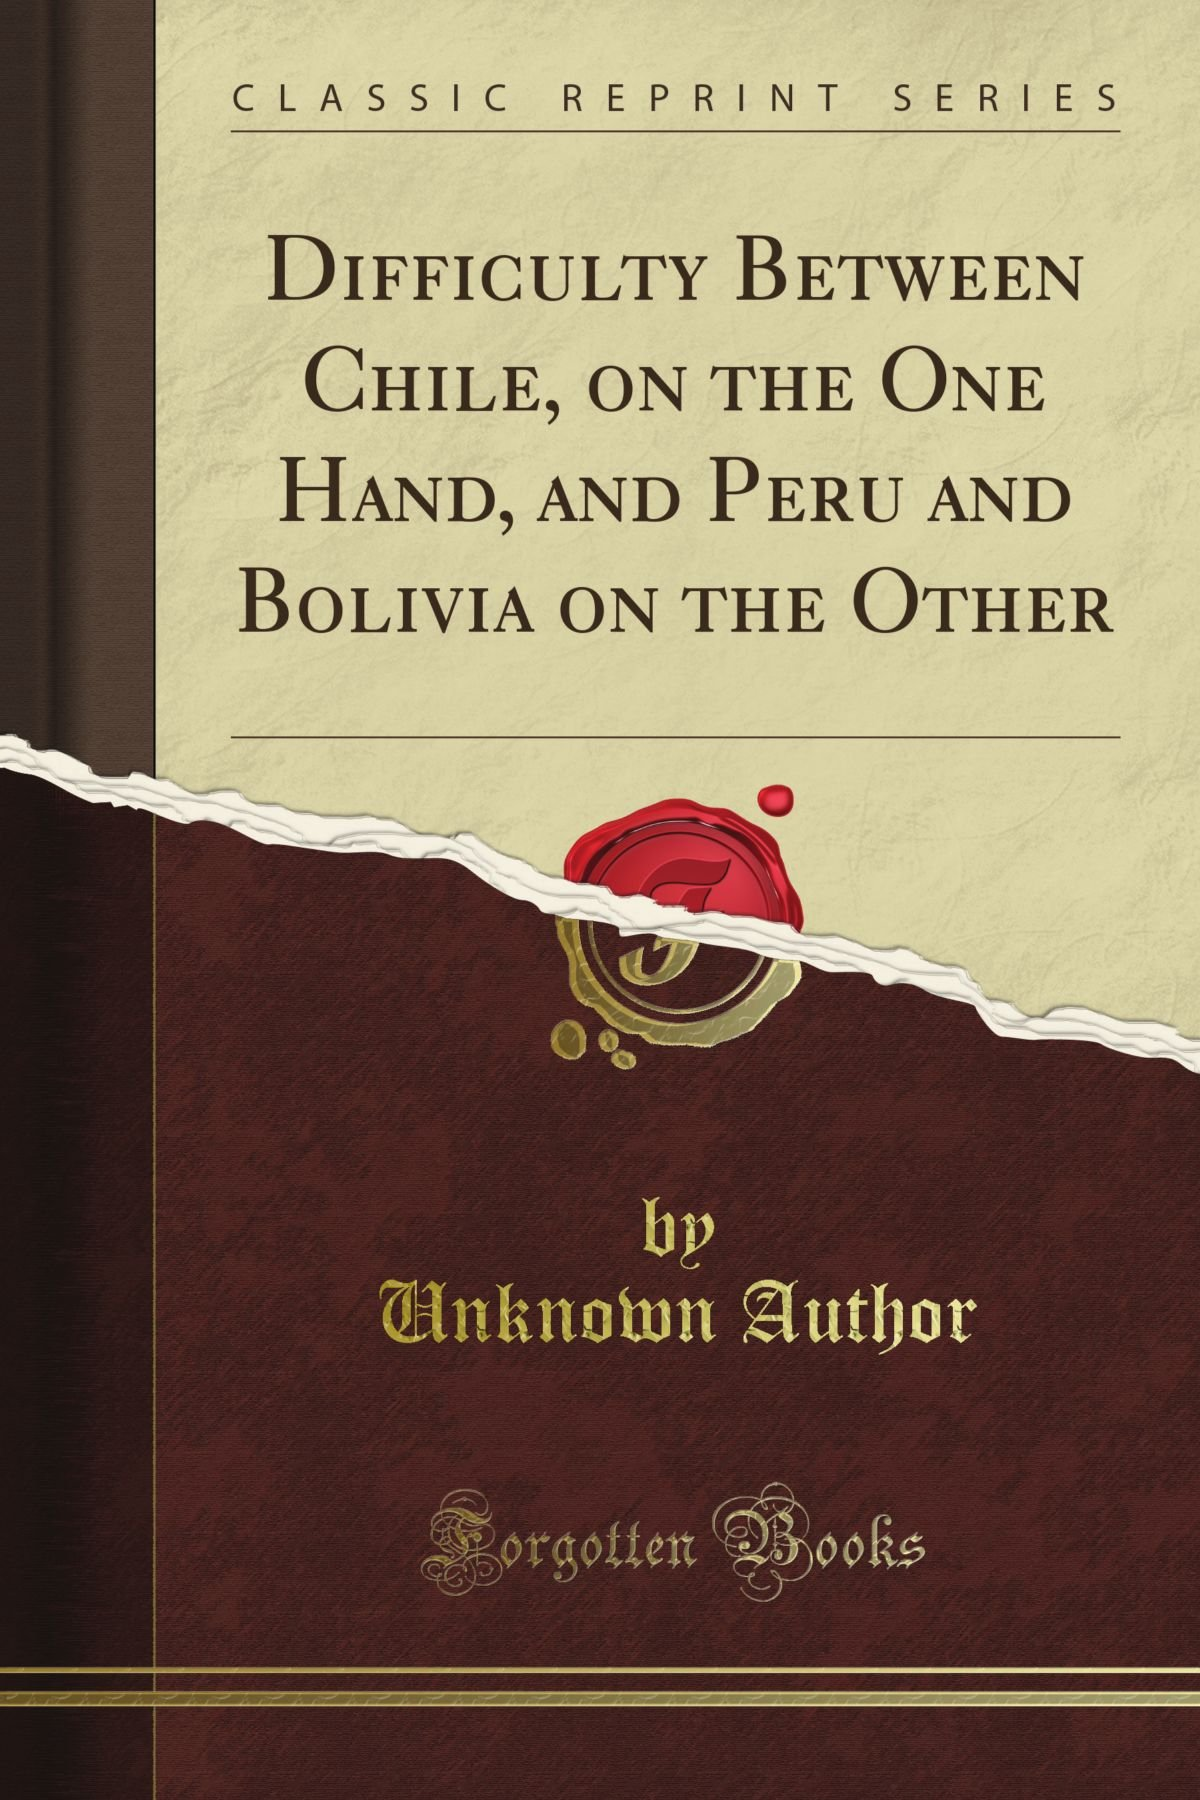 Difficulty Between Chile, on the One Hand, and Peru and Bolivia on the Other (Classic Reprint)